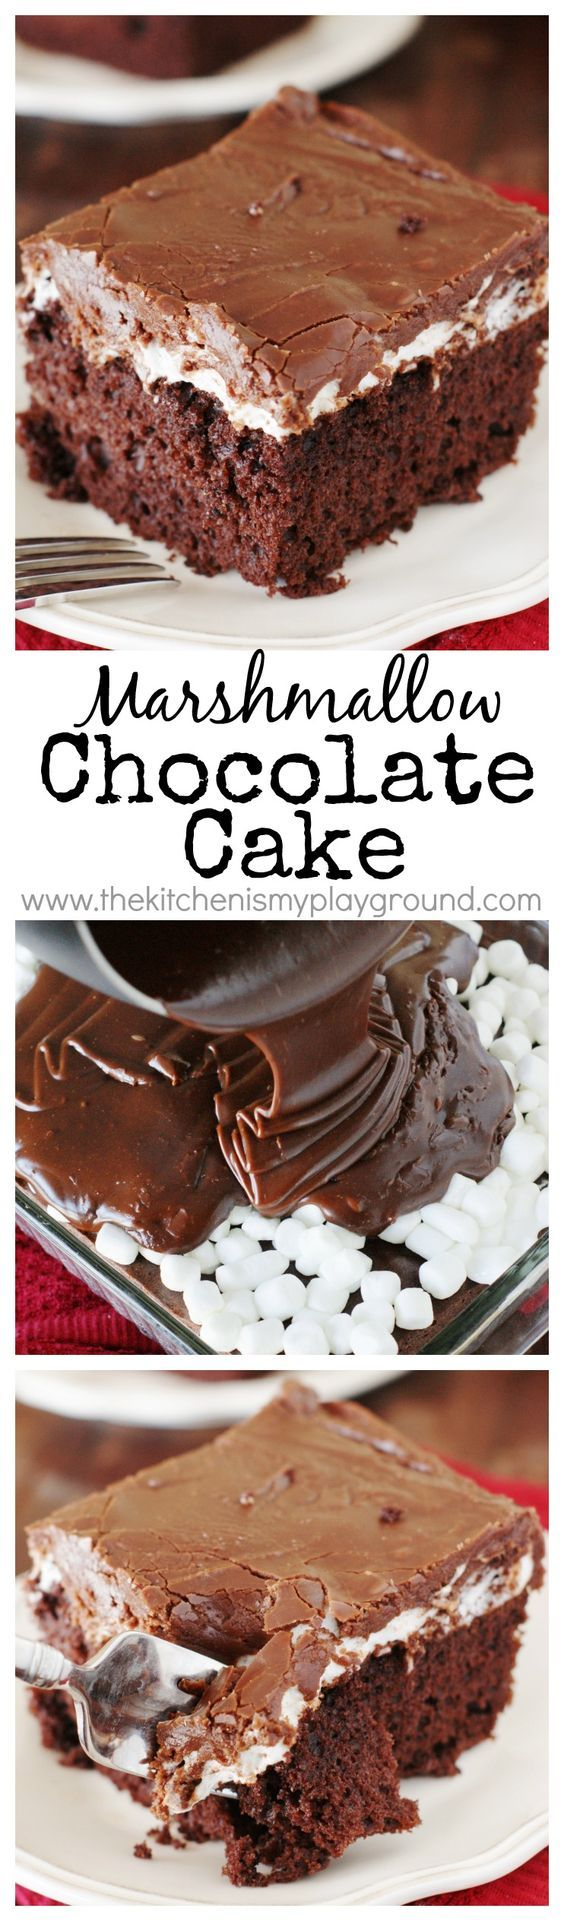 chocolate marshmallow cake marshmallow chocolate cake chocolate cake marshmallow 2885